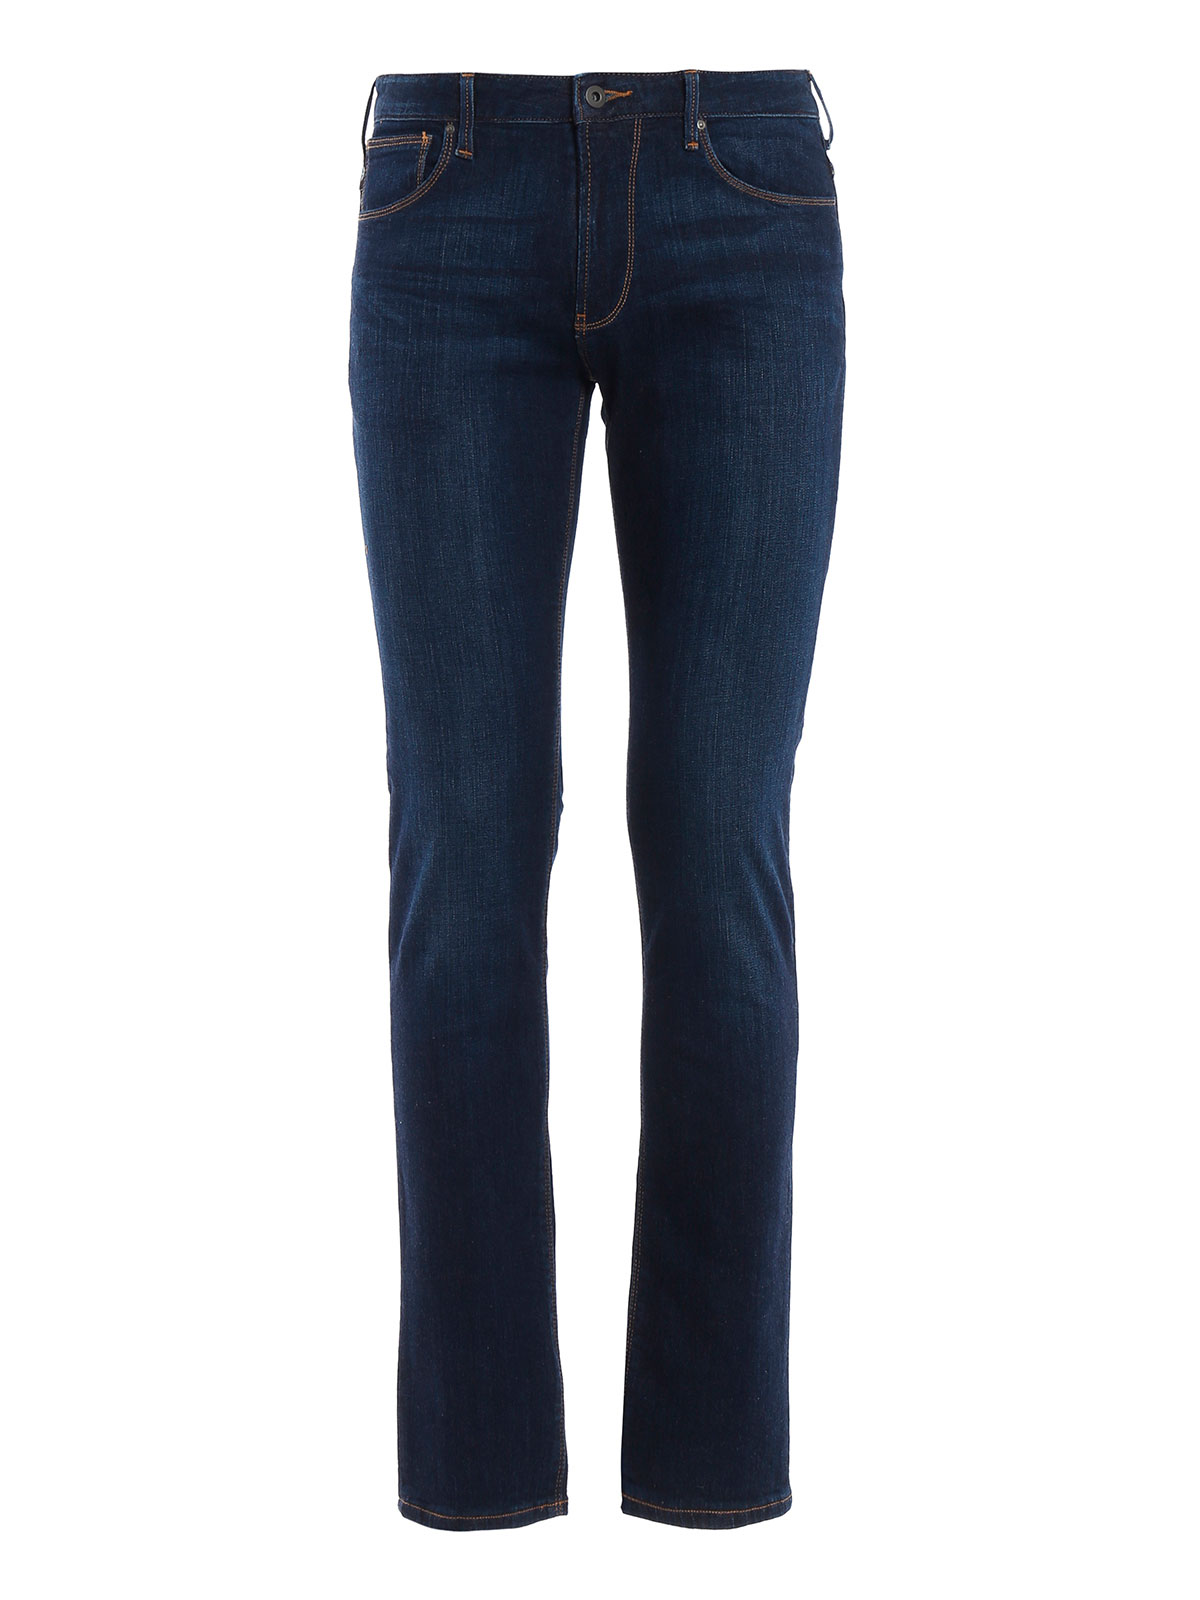 Picture of EMPORIO ARMANI | Men's Stretch 5 Pockets Jeans